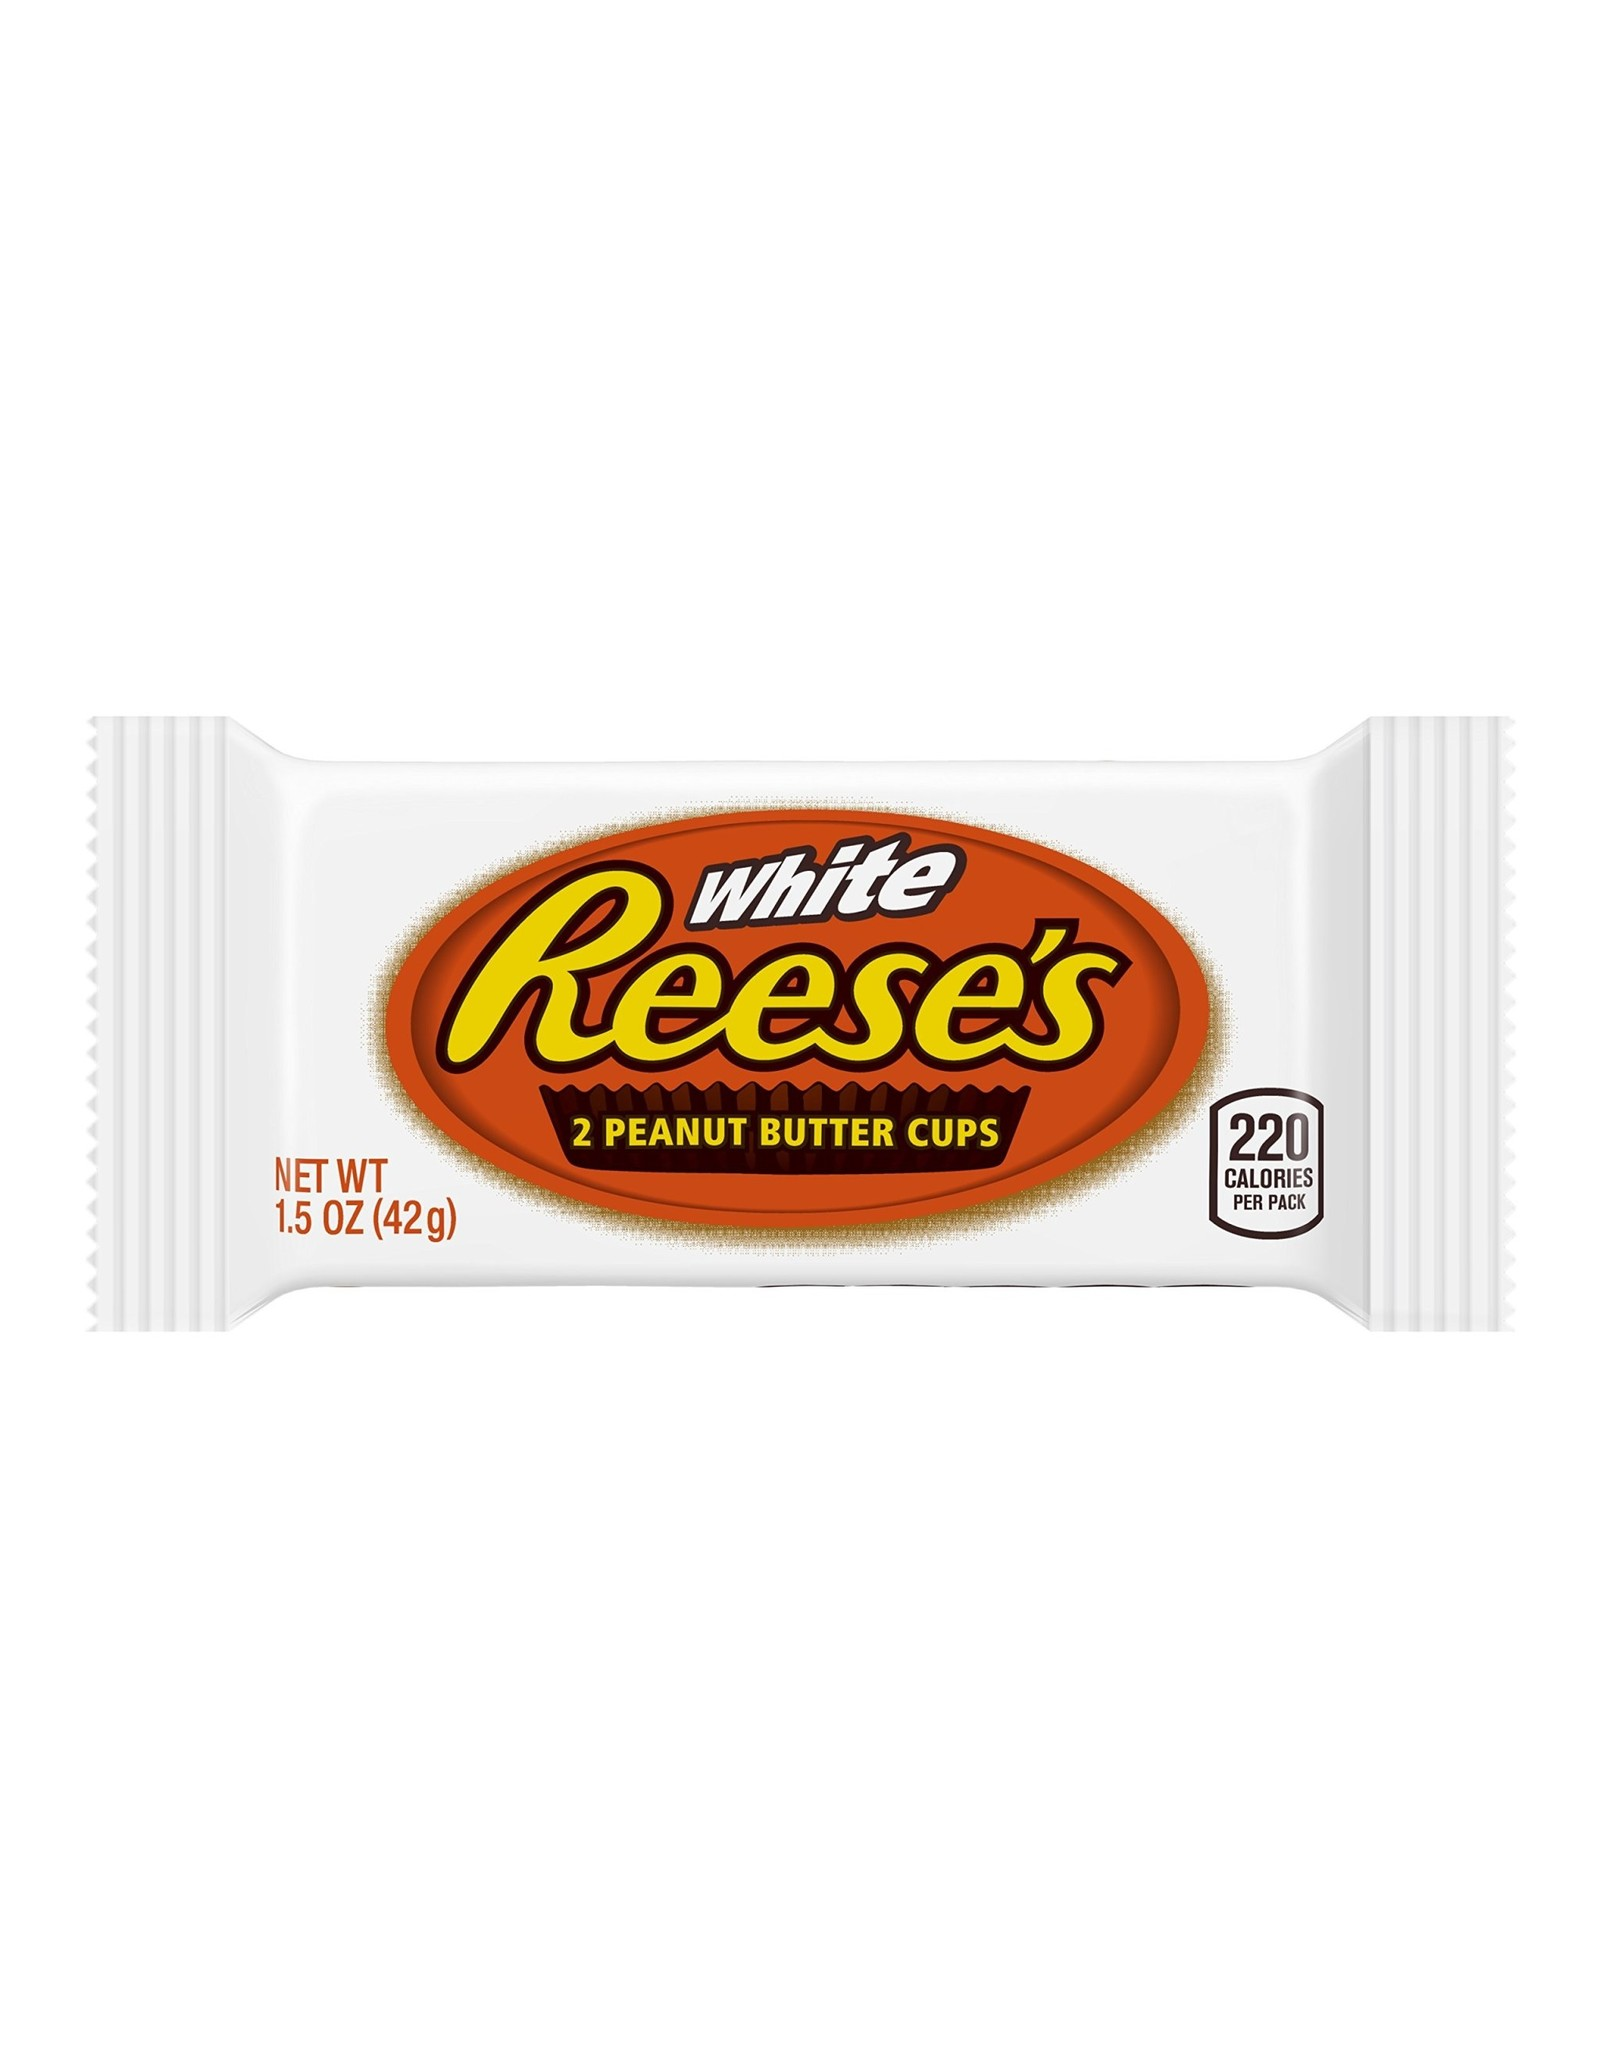 Reese's White - 2 Peanut Butter Cups - 39g